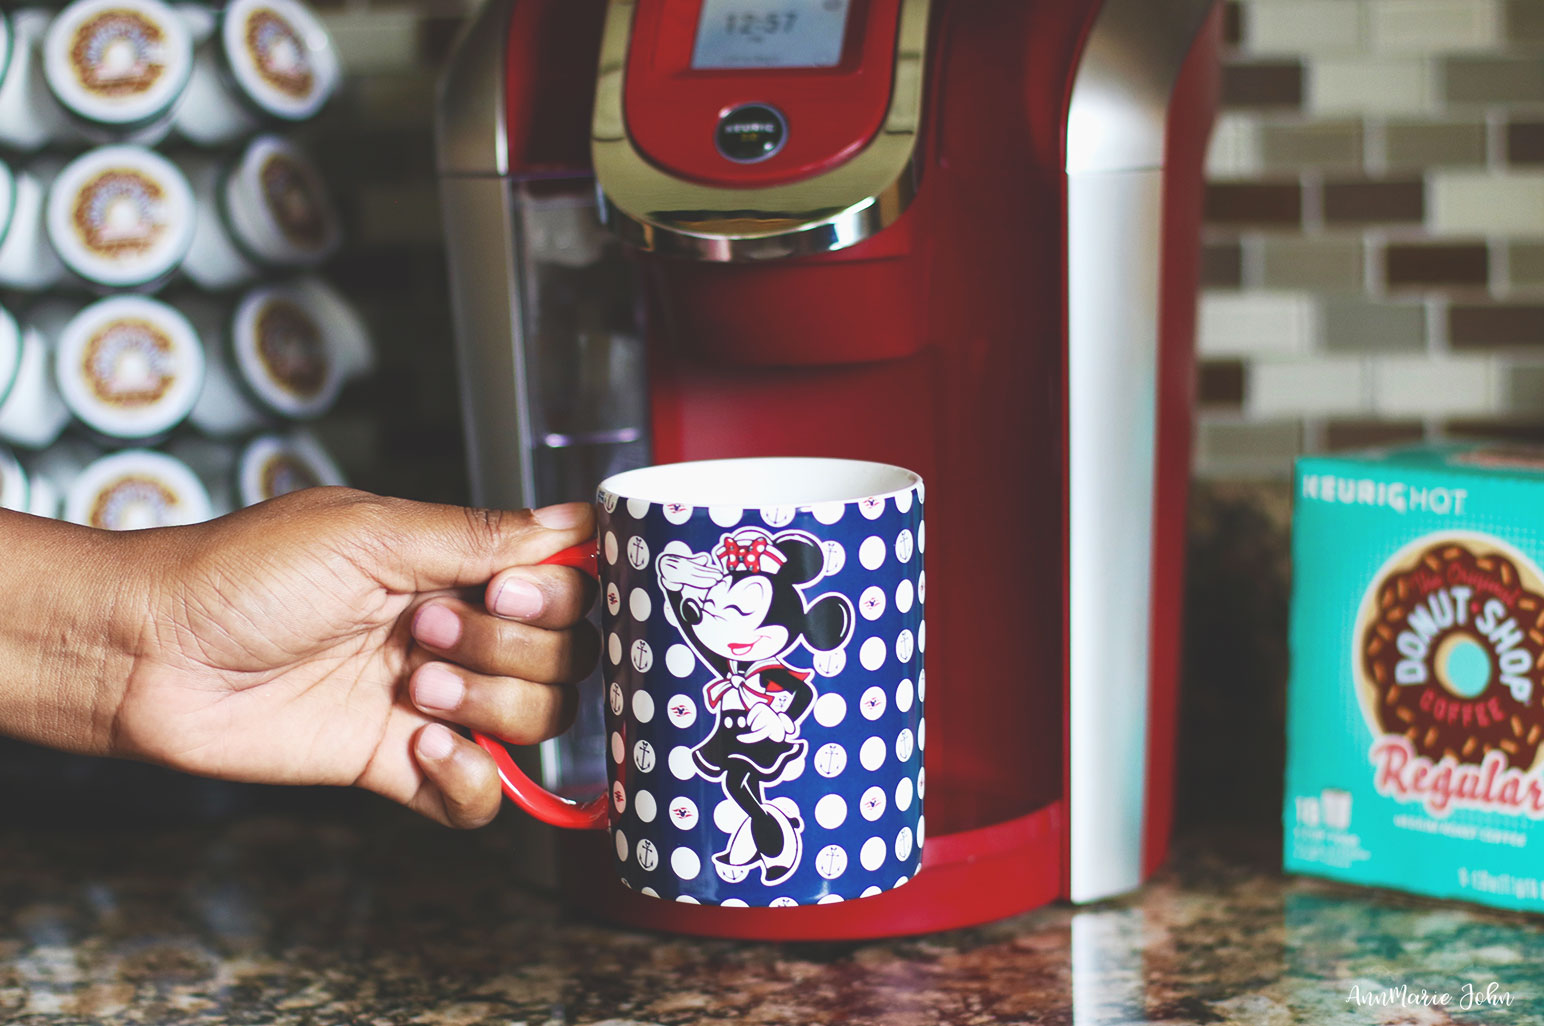 5 Reasons I Love Coffee - And You Should Too! ~ #HaveMoreFun